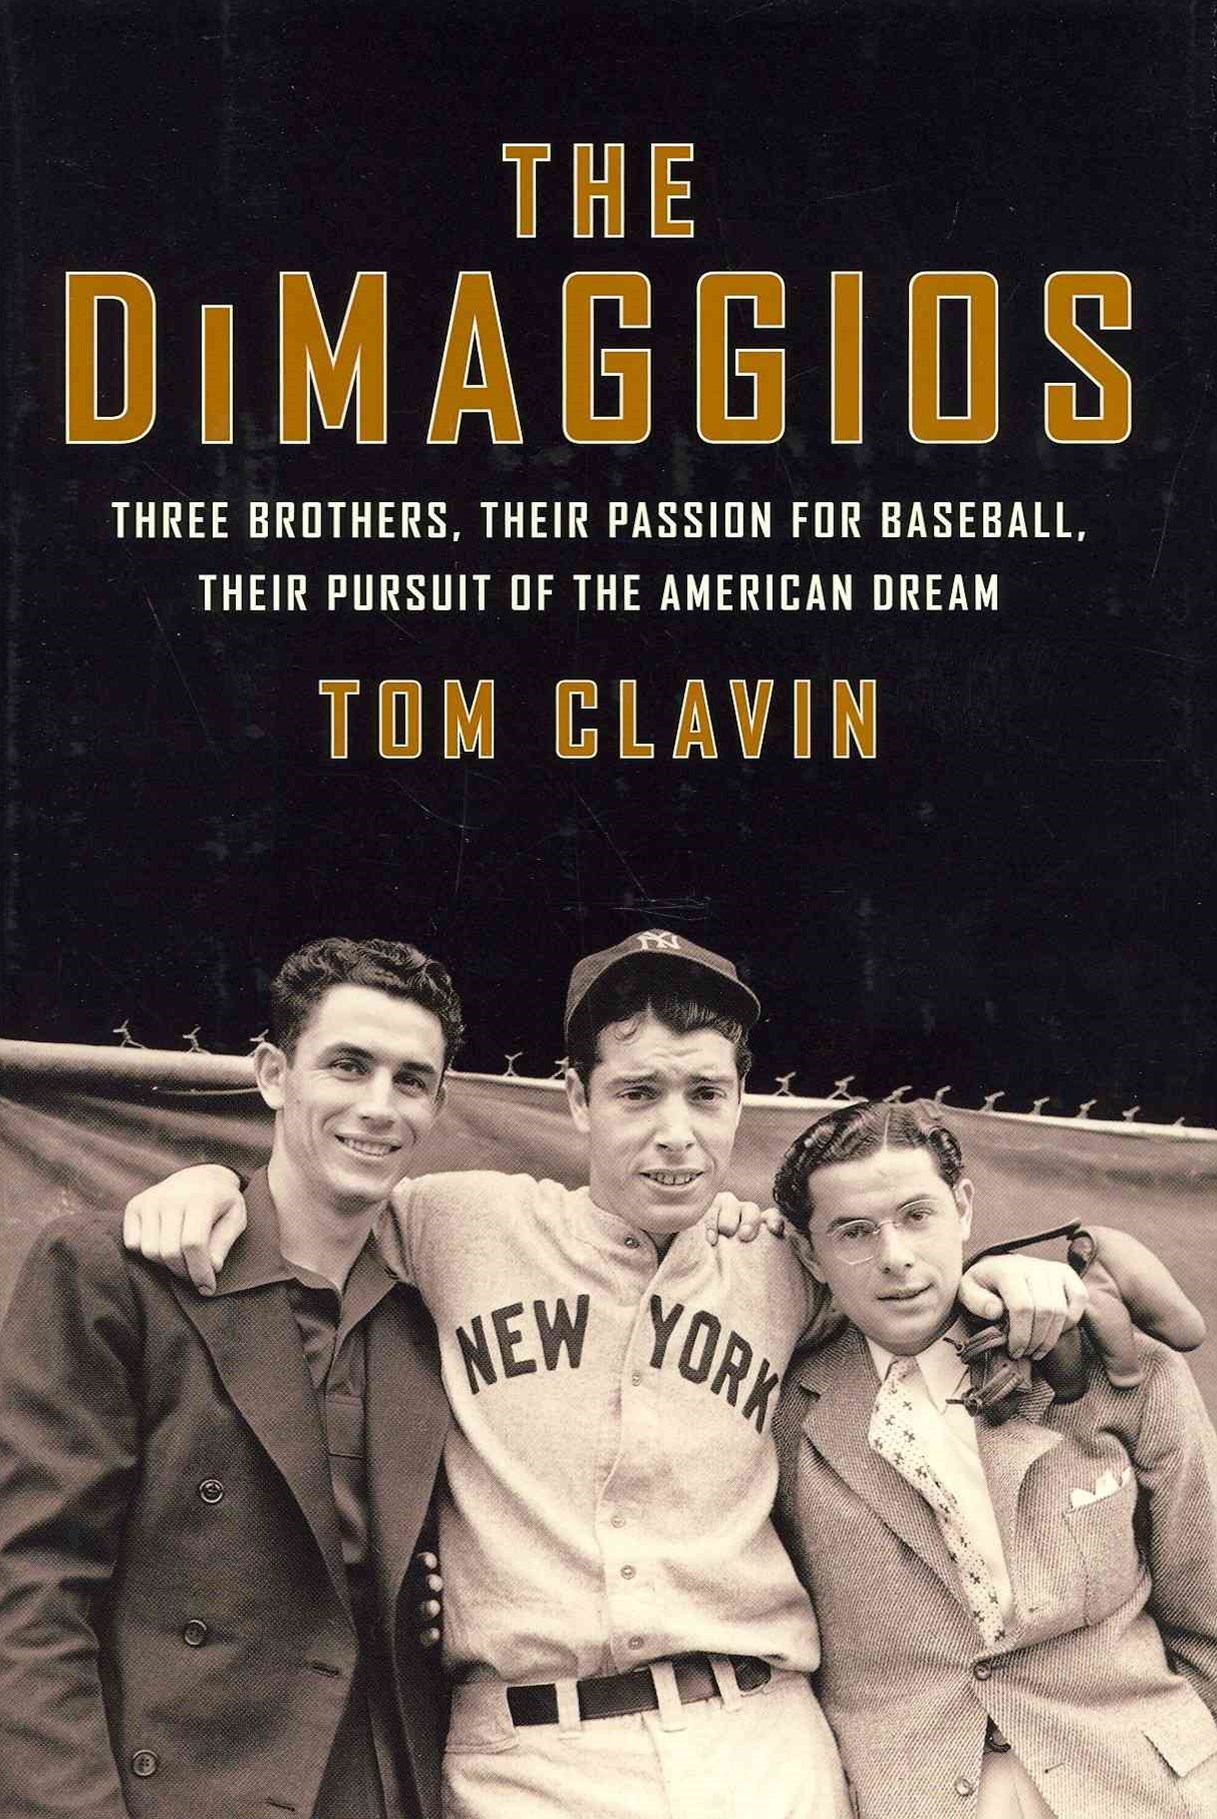 The DiMaggios: Three Brothers, Their Passion for Baseball, Their Pursuitof the American Dream